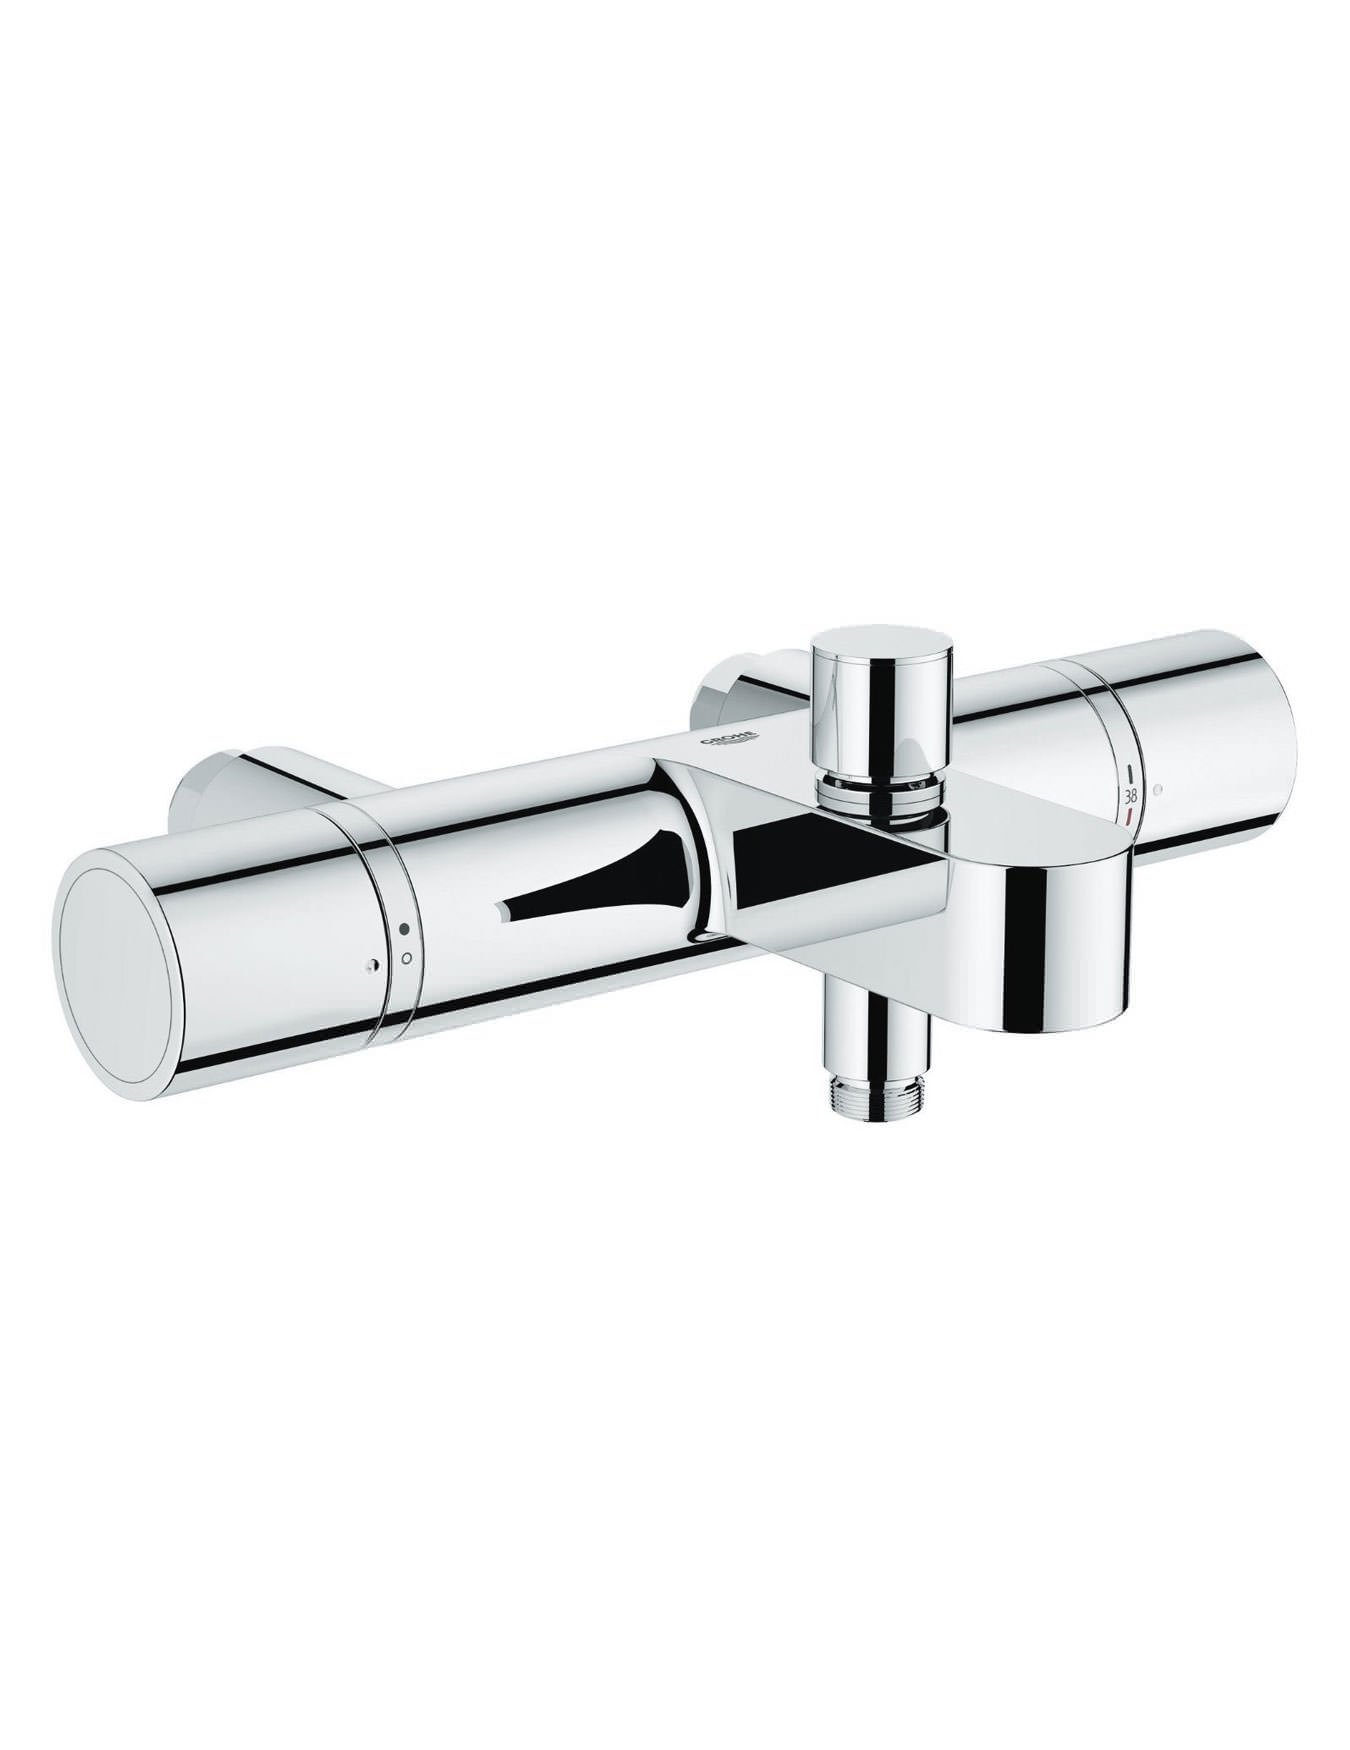 grohe grohtherm 1000 cosmo thermostatic bath shower mixer tap. Black Bedroom Furniture Sets. Home Design Ideas